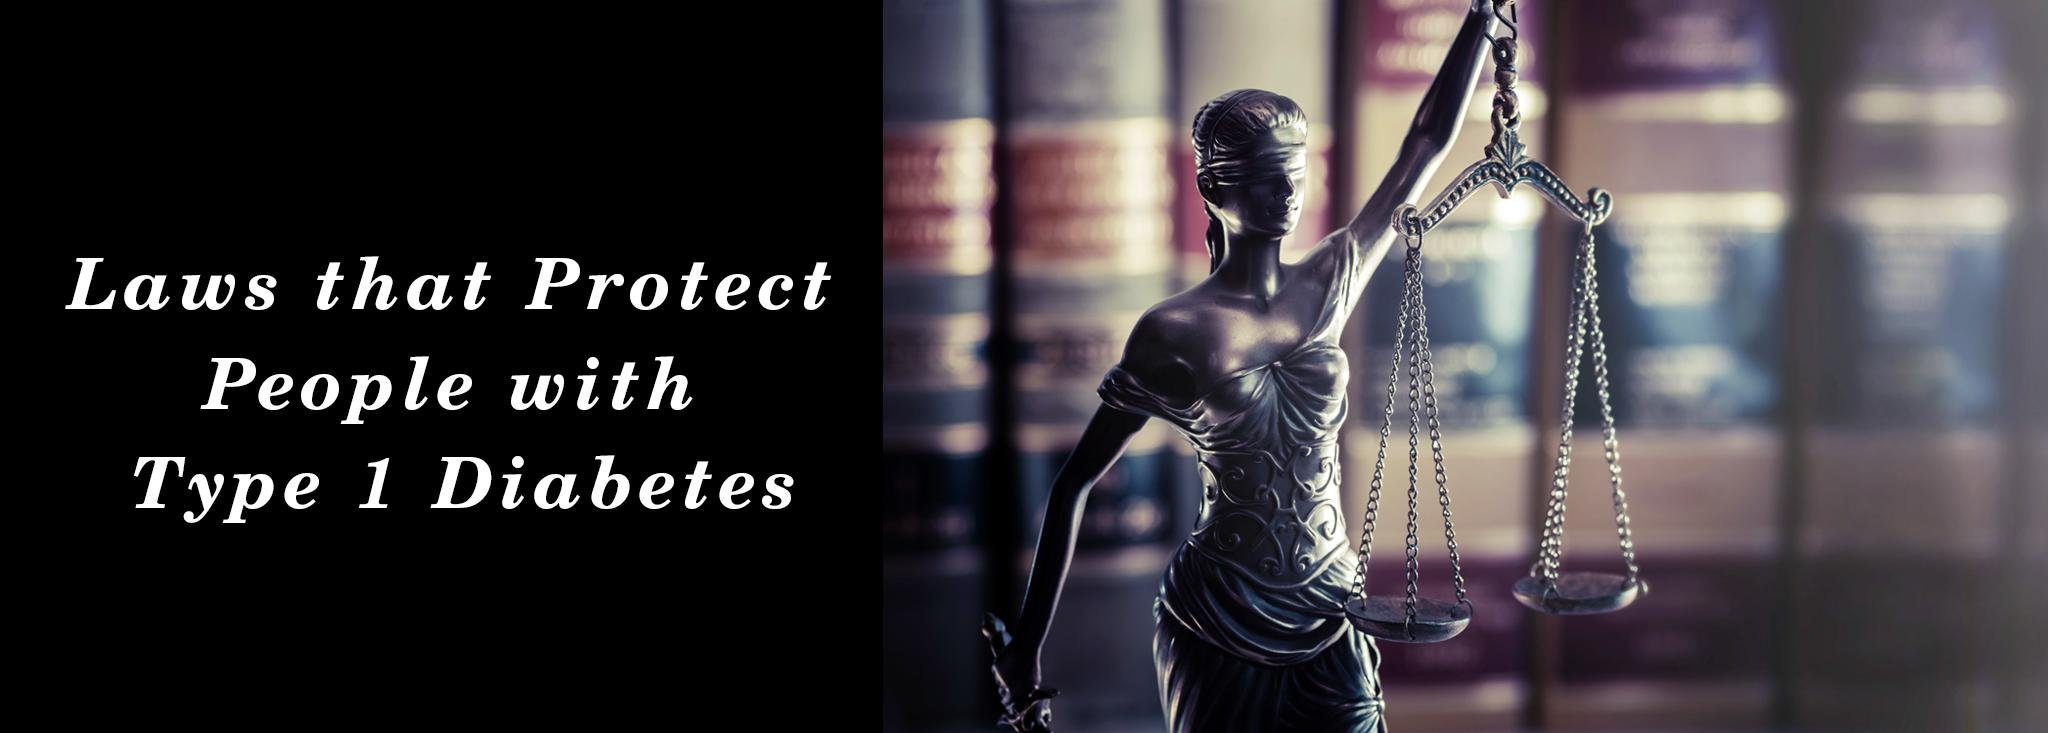 Diabetes Disability Discrimination Act